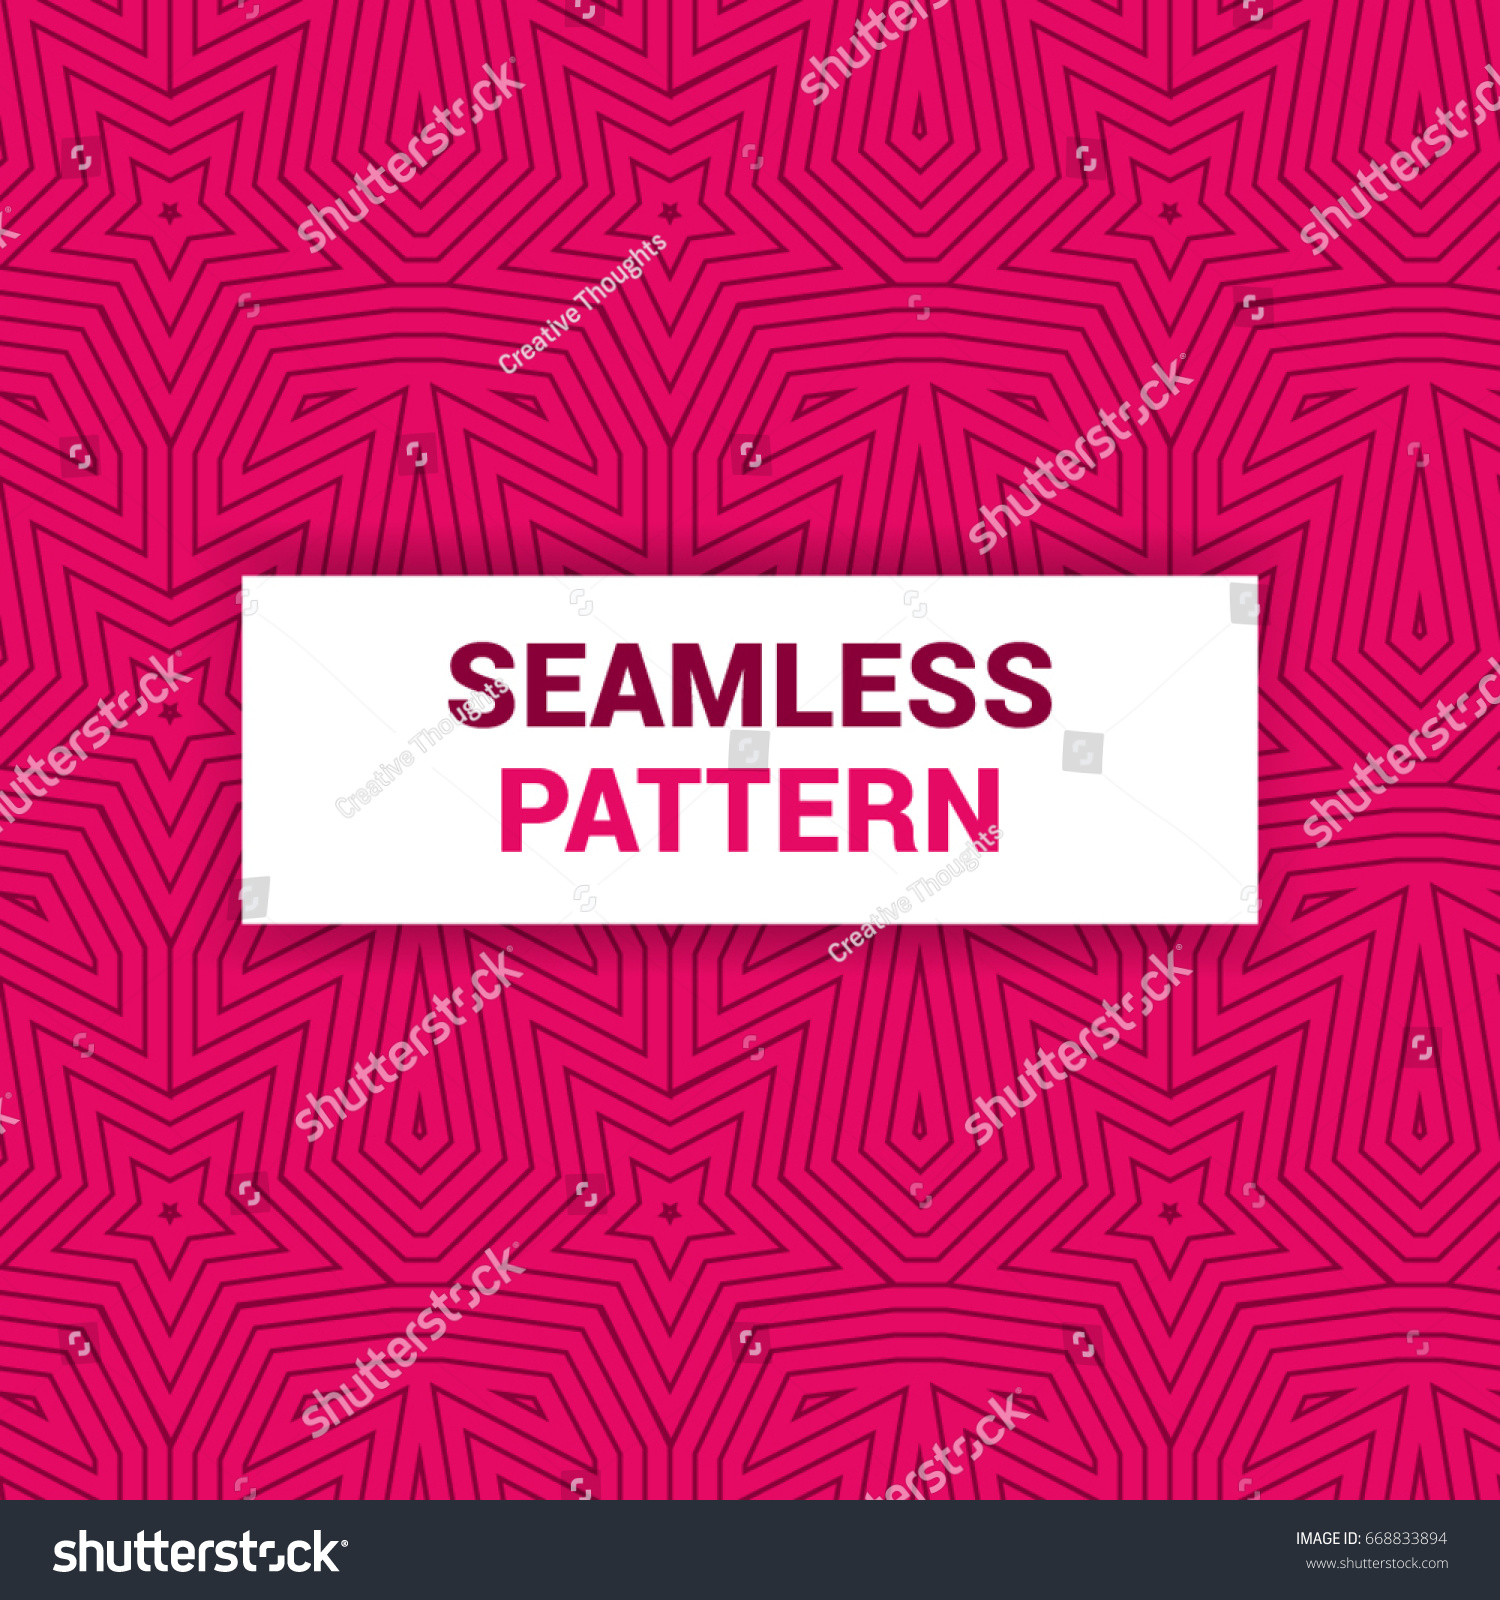 Seamless pattern design of arab geometric shapes with pink and red color background vector design print